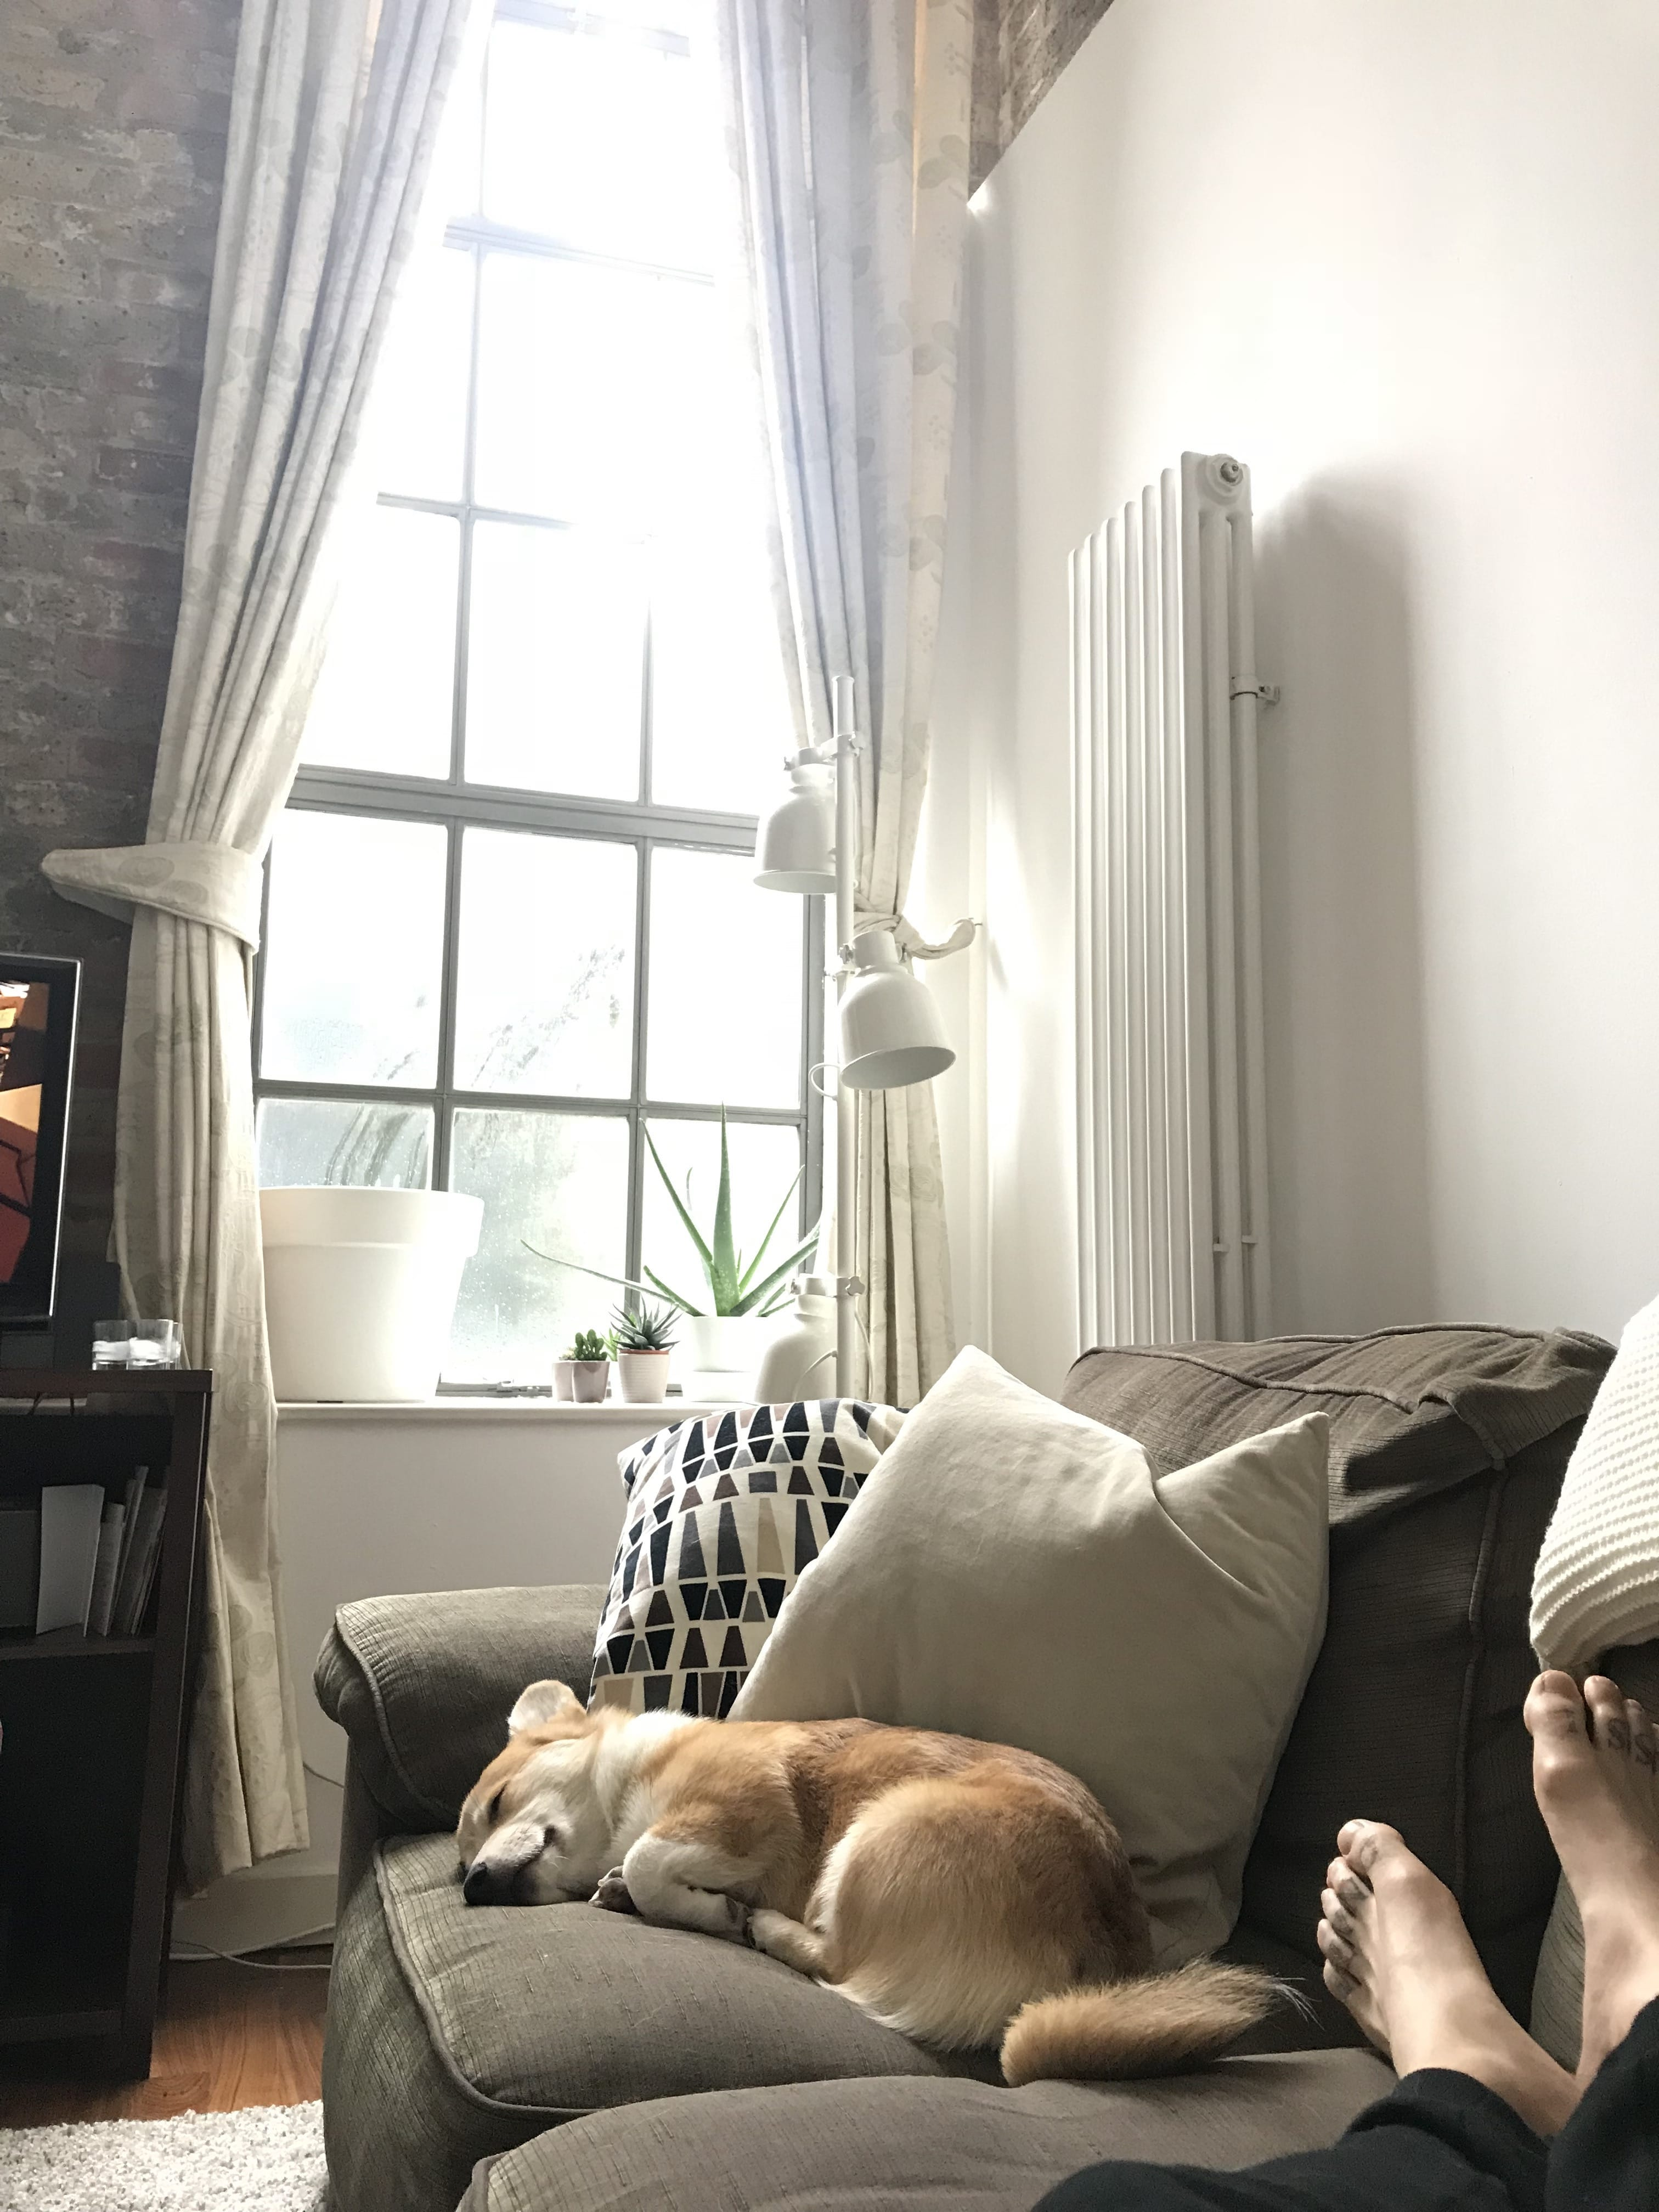 Corgi asleep on sofa in warehouse conversion flat